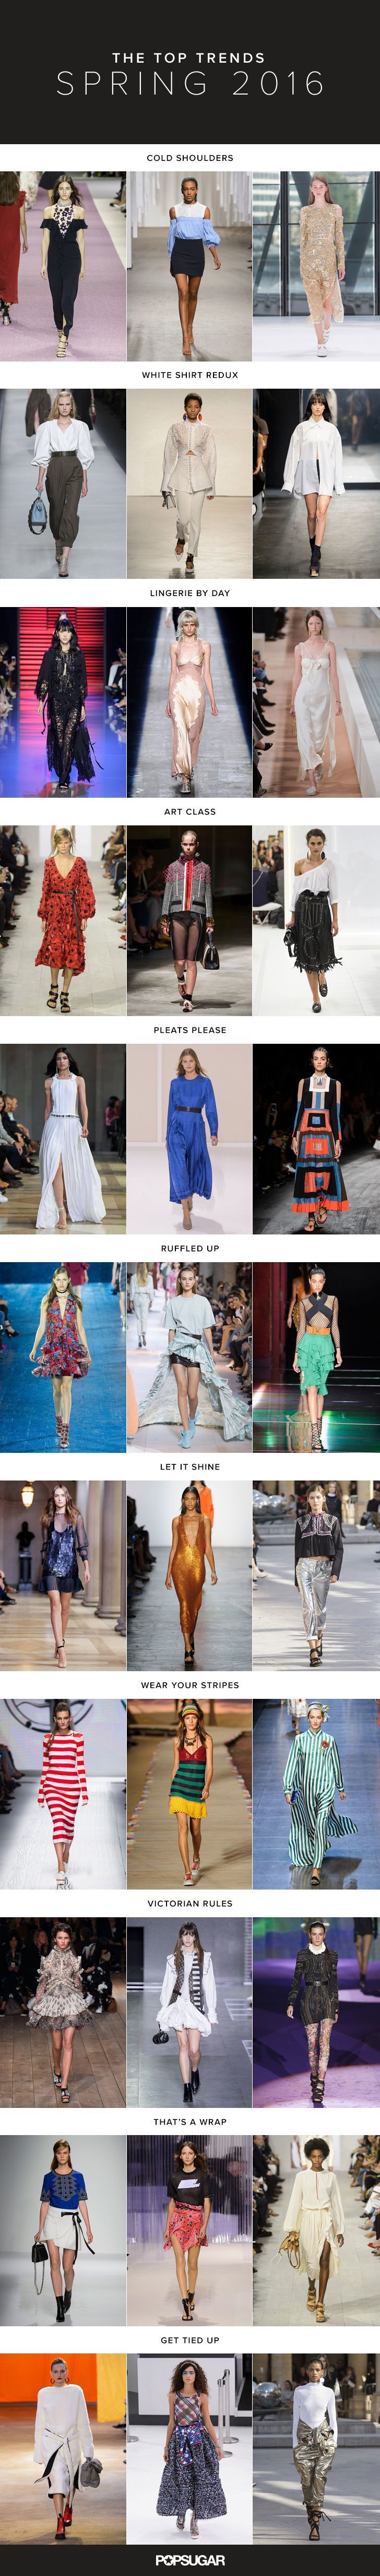 All the trends you need to know for Spring 2016.